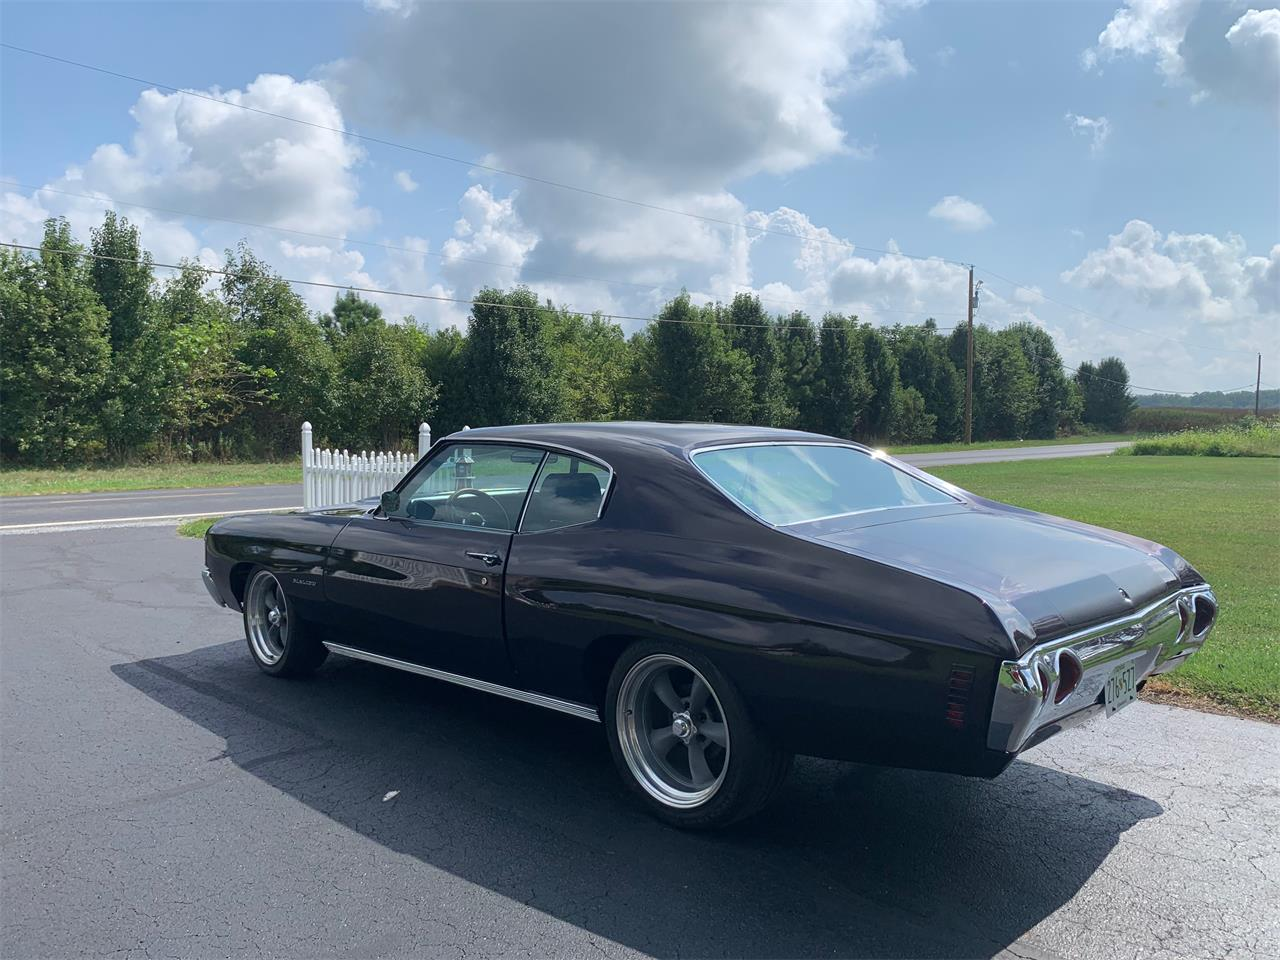 Large Picture of Classic 1972 Chevrolet Chevelle Malibu located in Maryland Offered by a Private Seller - QK1N